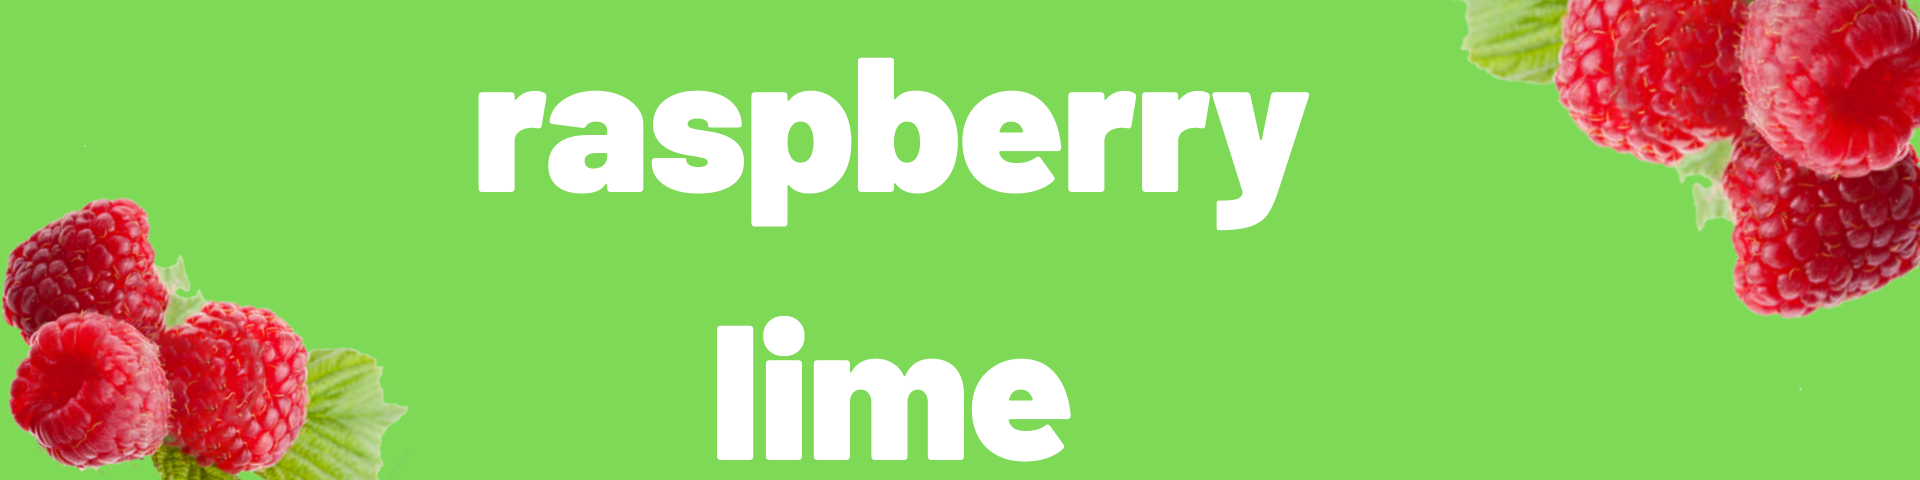 """A banner that reads """"raspberry lime,"""" with images of raspberries in the corners."""